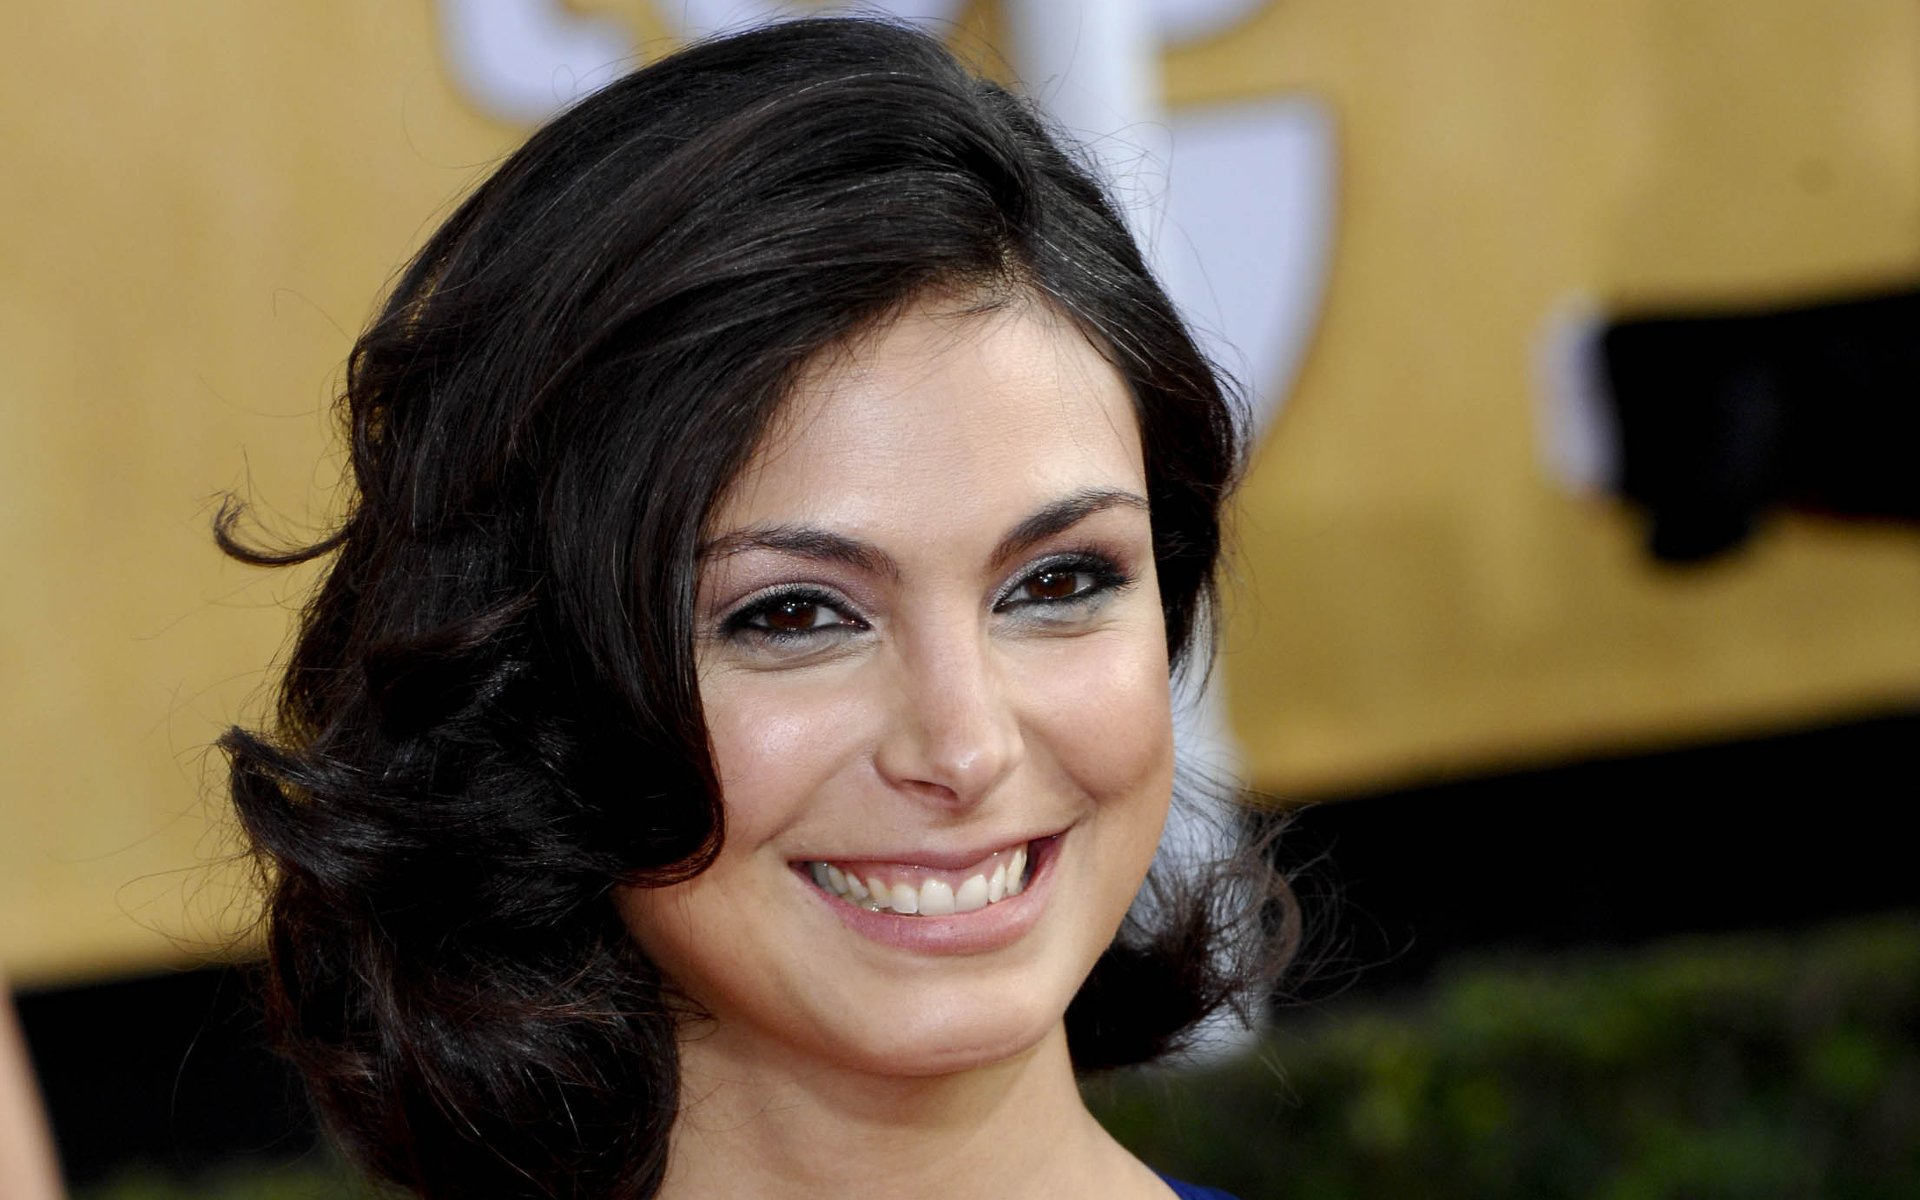 Iphone Wallpaper For Teenage Girl Morena Baccarin Hd Wallpaper Background Image